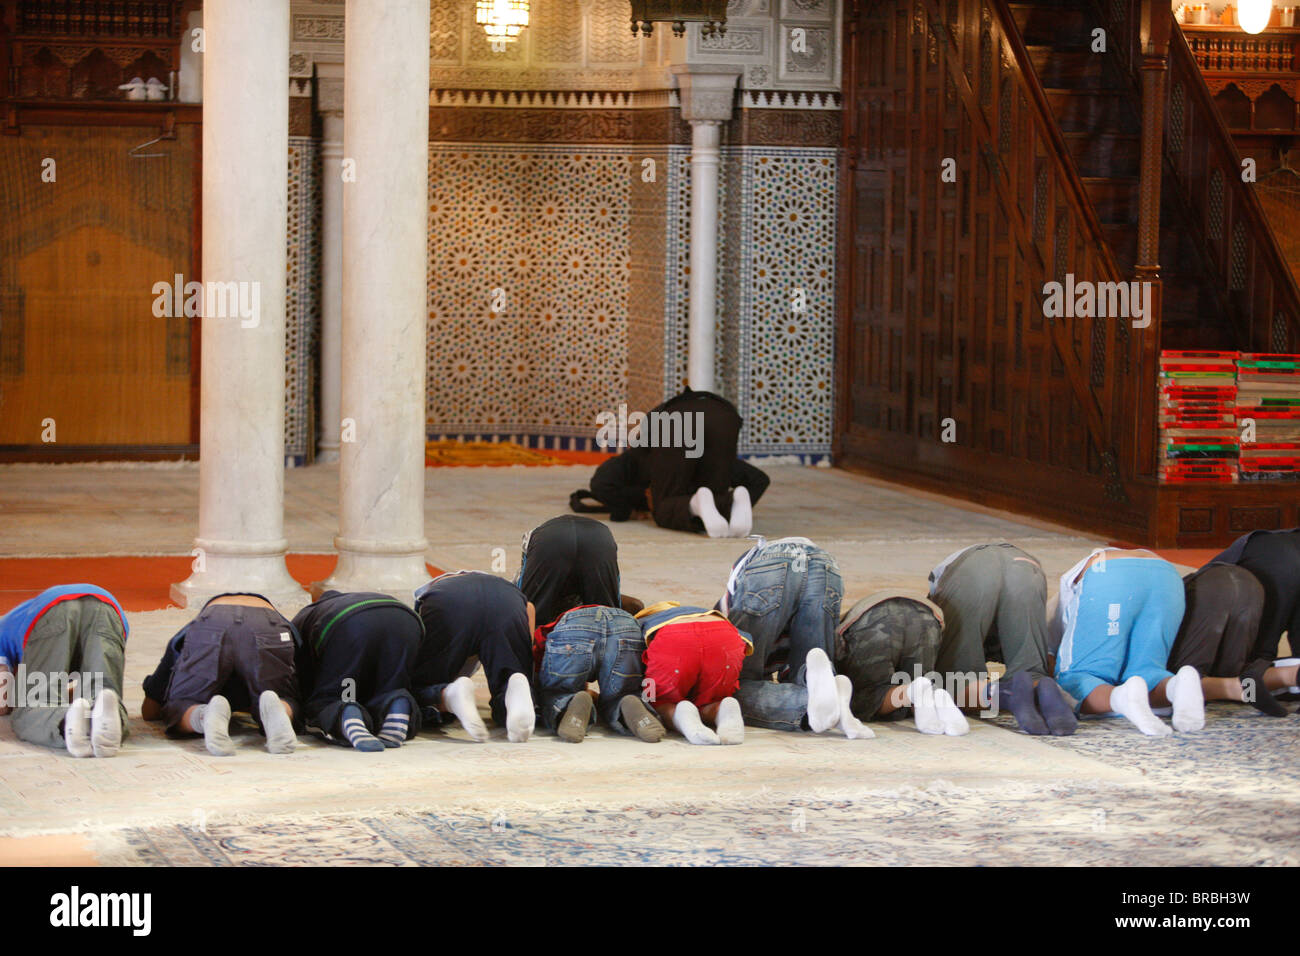 Young Muslims learning how to pray, Paris, France - Stock Image